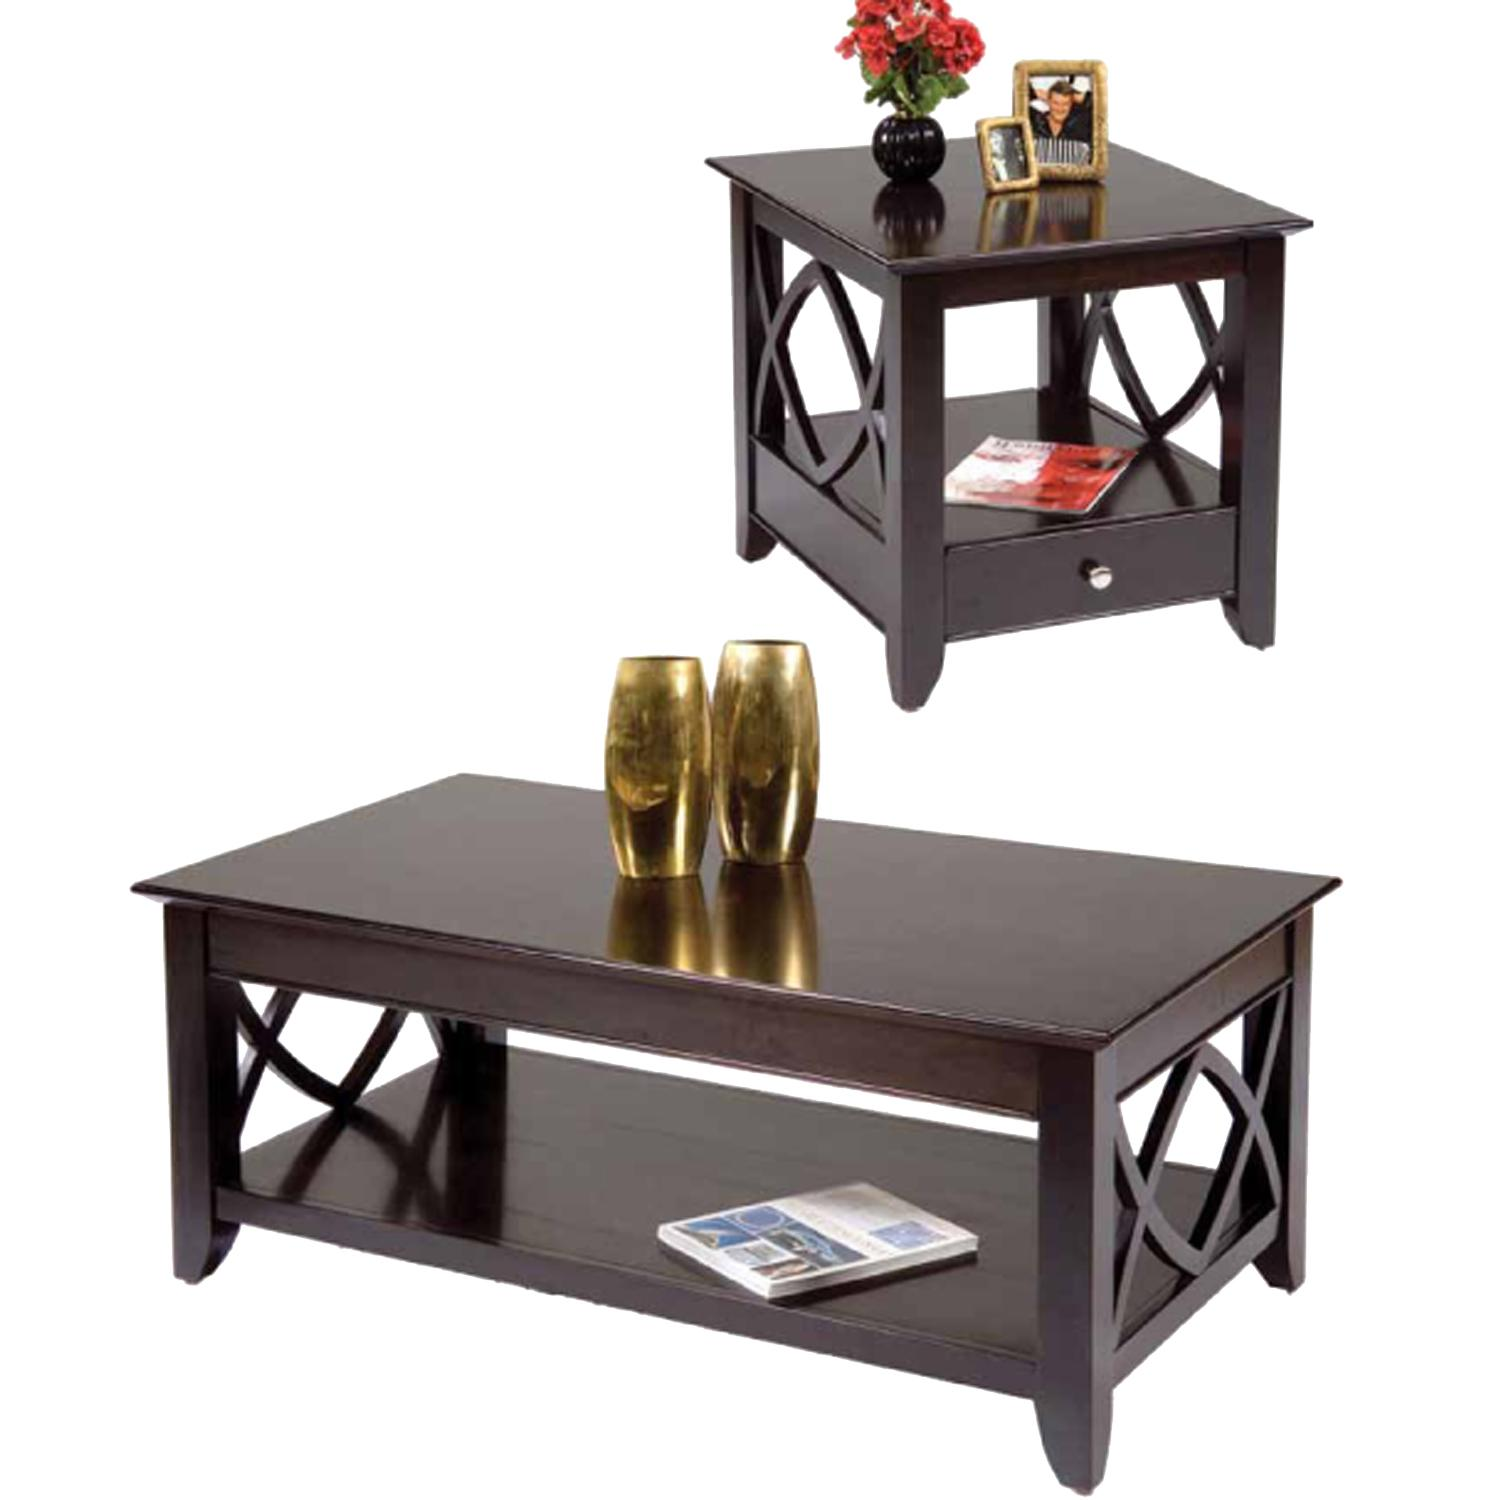 Liberty Furniture Piedmont 3 Piece Accent Tables Set - Item Number: 955-OT-SET05